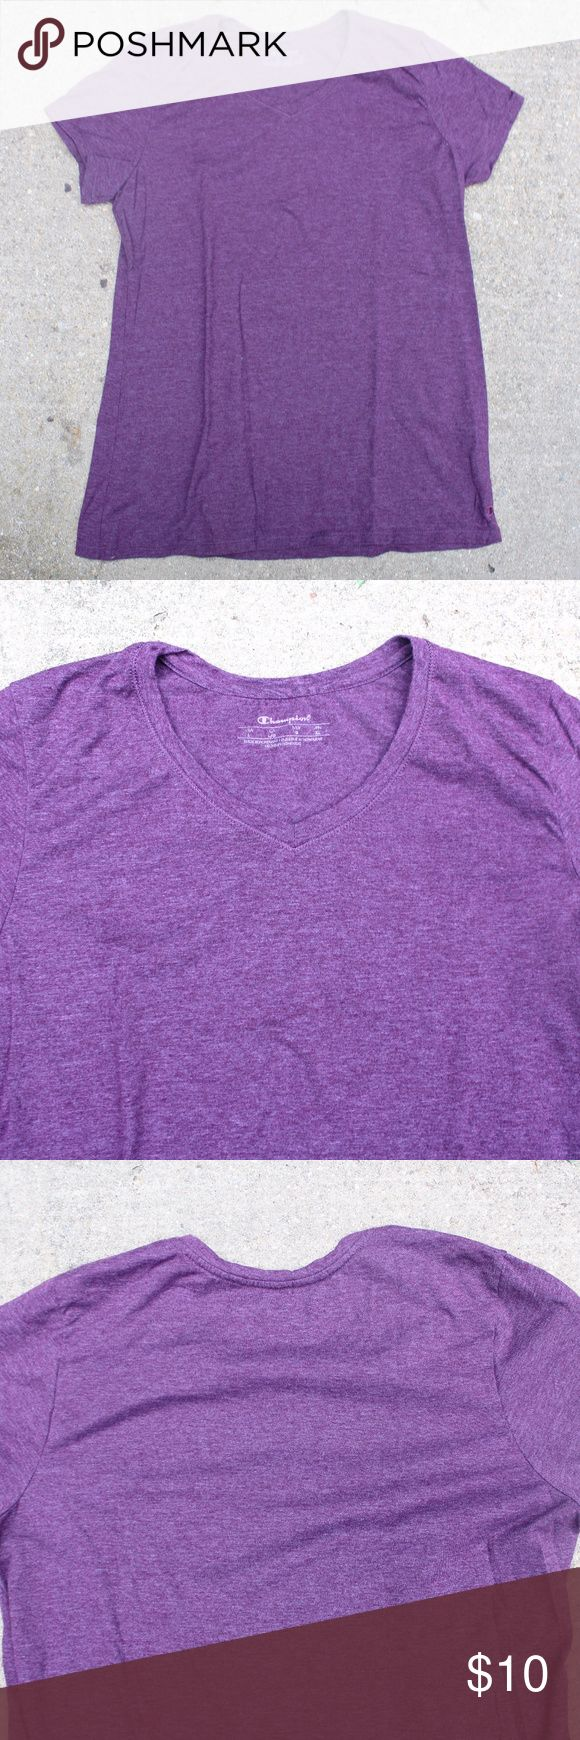 Dark Purple Women's Champion Vapor® Cotton Tee Dark purple v-neck cotton t-shirt. Worn a few times. -Champion Vapor with X-Temp™ technology dries faster as your body heat rises. -Wicks sweat away from skin for cooler, drier comfort. -Beyond soft ringspun cotton-blend feels great against skin. -Set-in V-neck and feminine fit looks good in the gym or hiking a trail. -C logo at hem. -Body 60% cotton/40% Polyester; oxford: 90% cotton/10% polyester Champion Tops